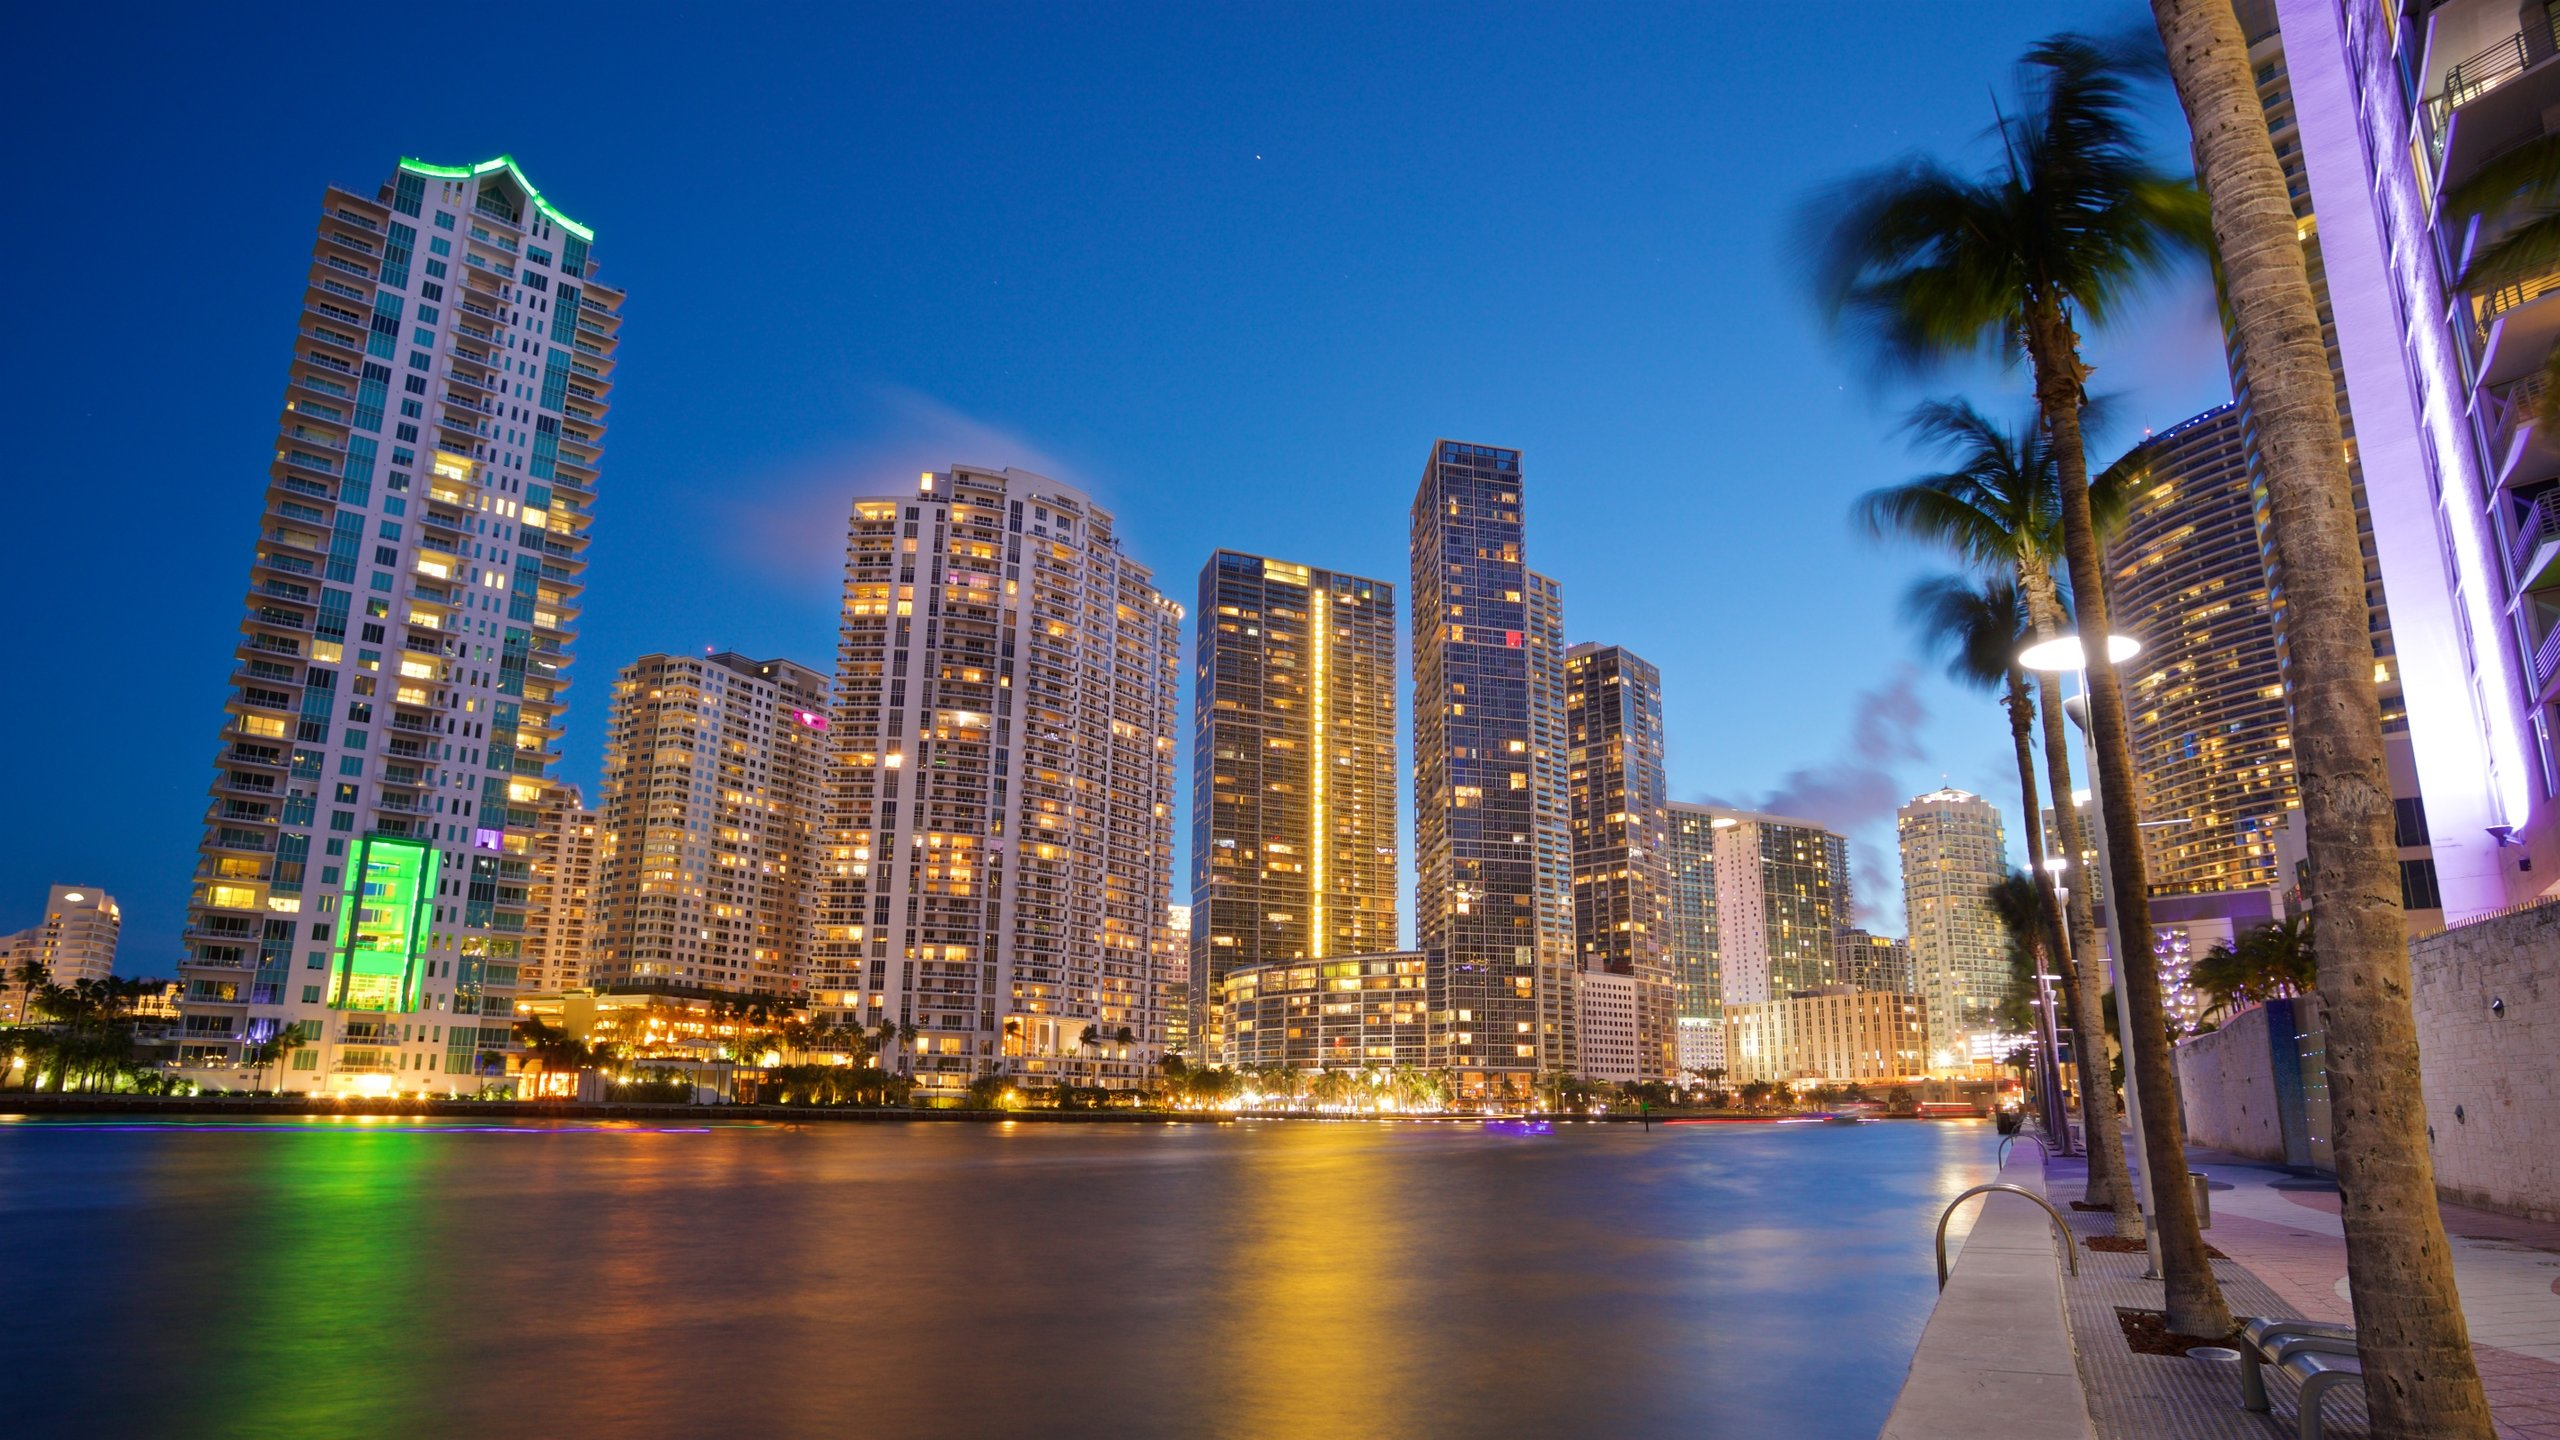 Miami Hotels from $142 - Cheap Hotel